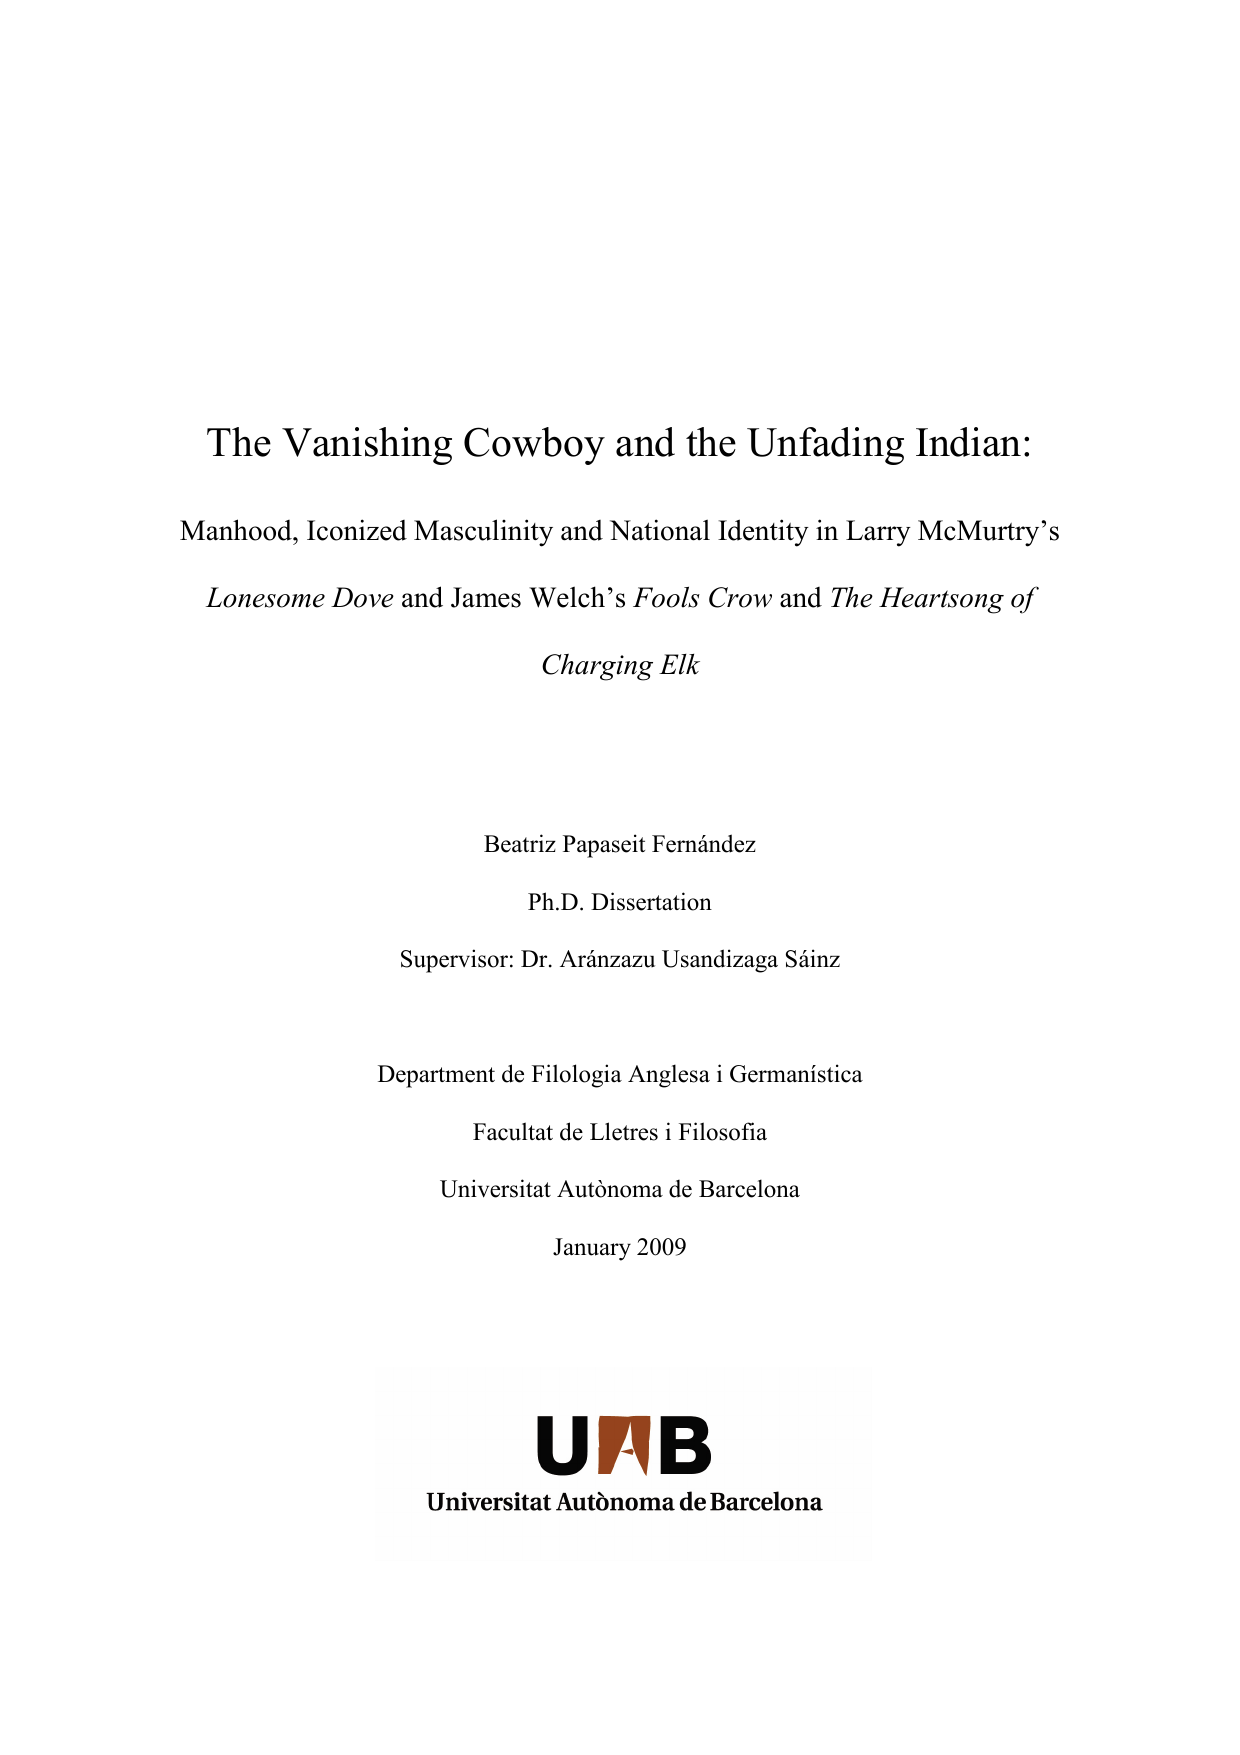 The Vanishing Cowboy And The Unfading Indian Manhood